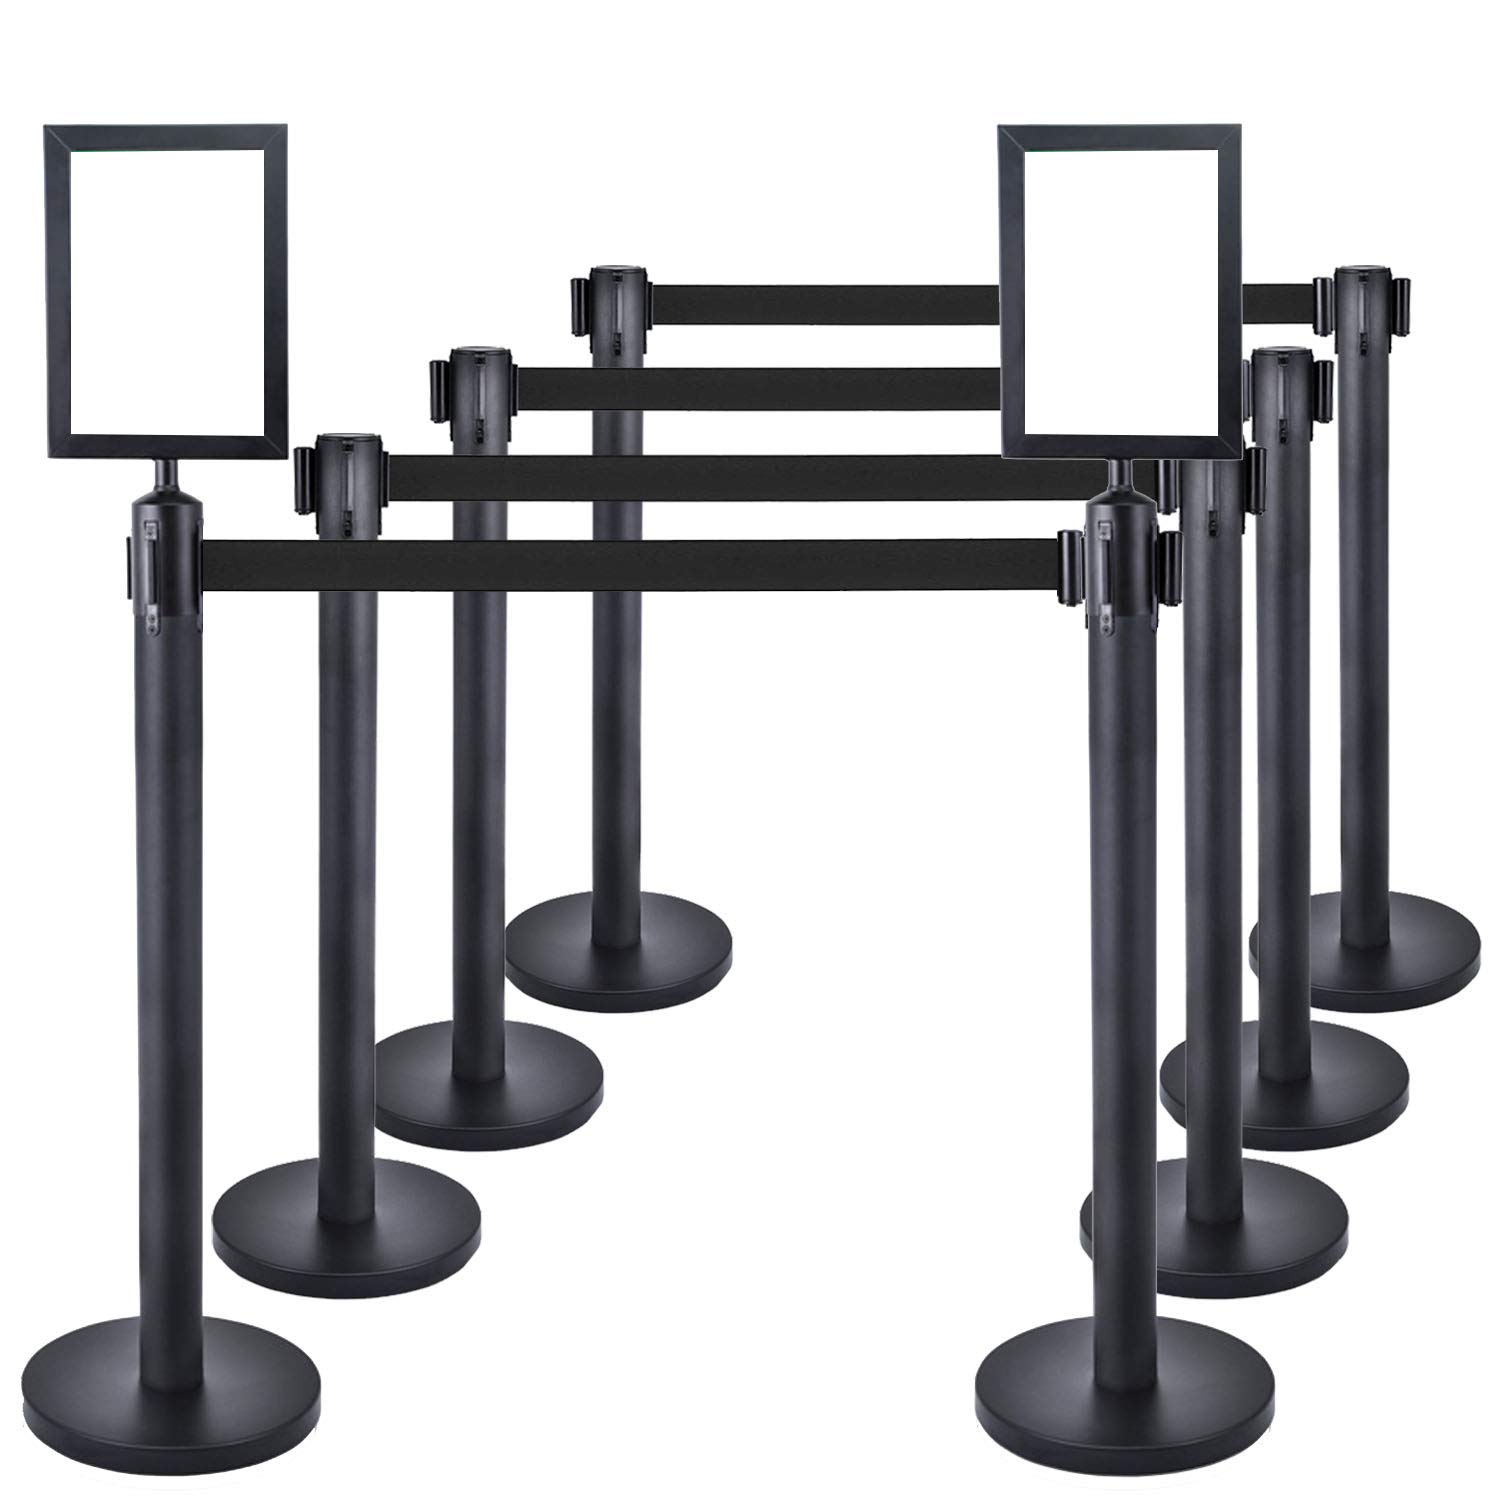 8 PCS Heavy Duty Steel Black Stanchion Post/Pole/Sign/Rope with 9.8 ft Retractable Black Belt and 2PCS Sign Holder Portrait Frame | Safety Locking Belt | 4-Way Connect | Crowd Control Barrier